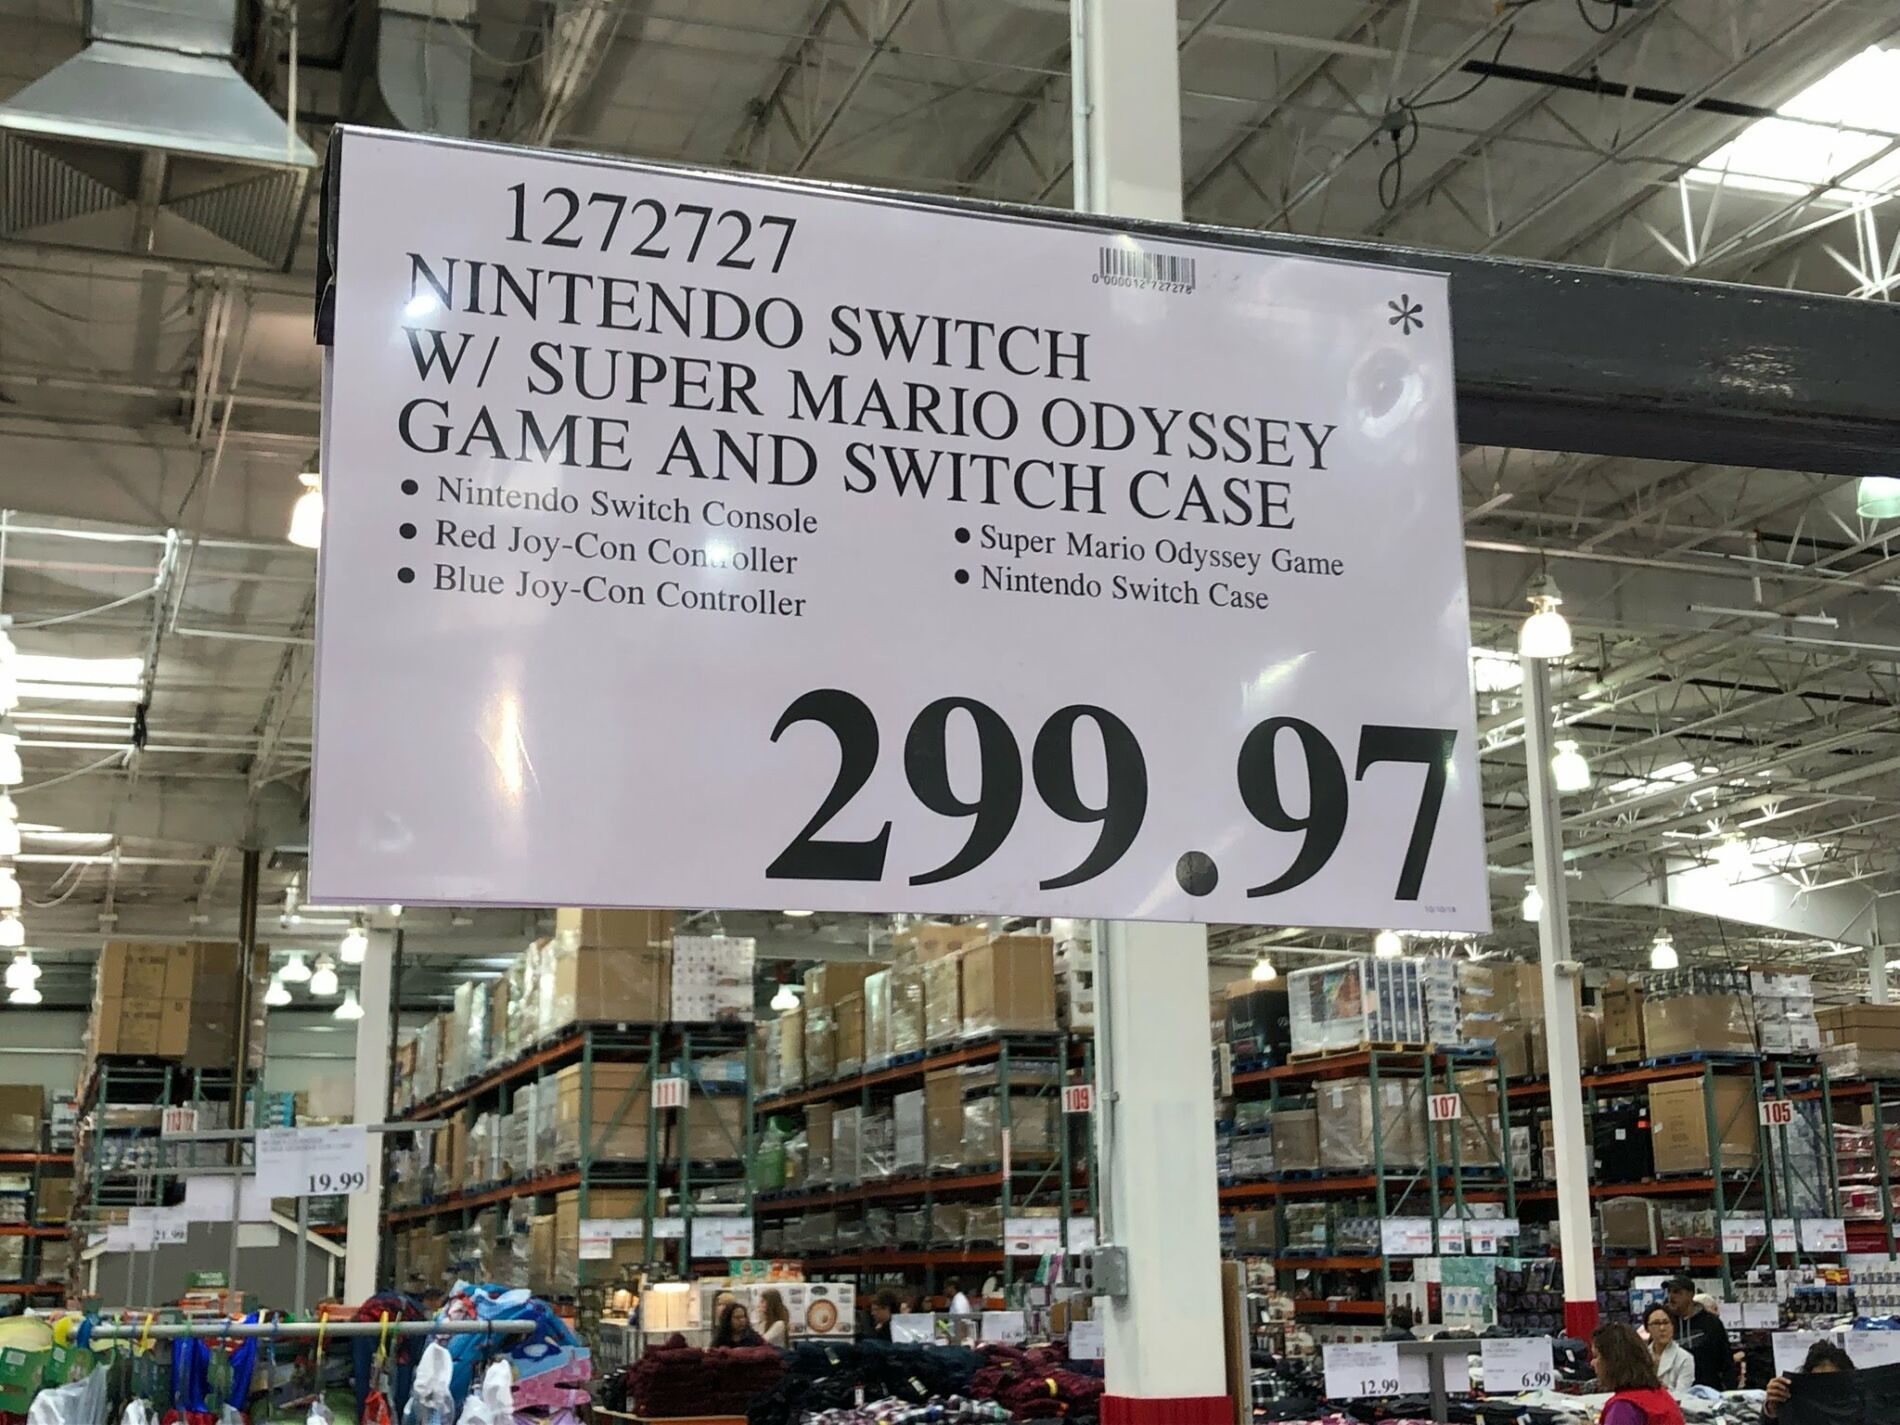 Nintendo Switch With Super Mario Odyssey And Case 299 97 Costco Clearance Nintendo Switch Super Mario Nintendo Switch Case İlk modelde the legend of zelda: super mario nintendo switch